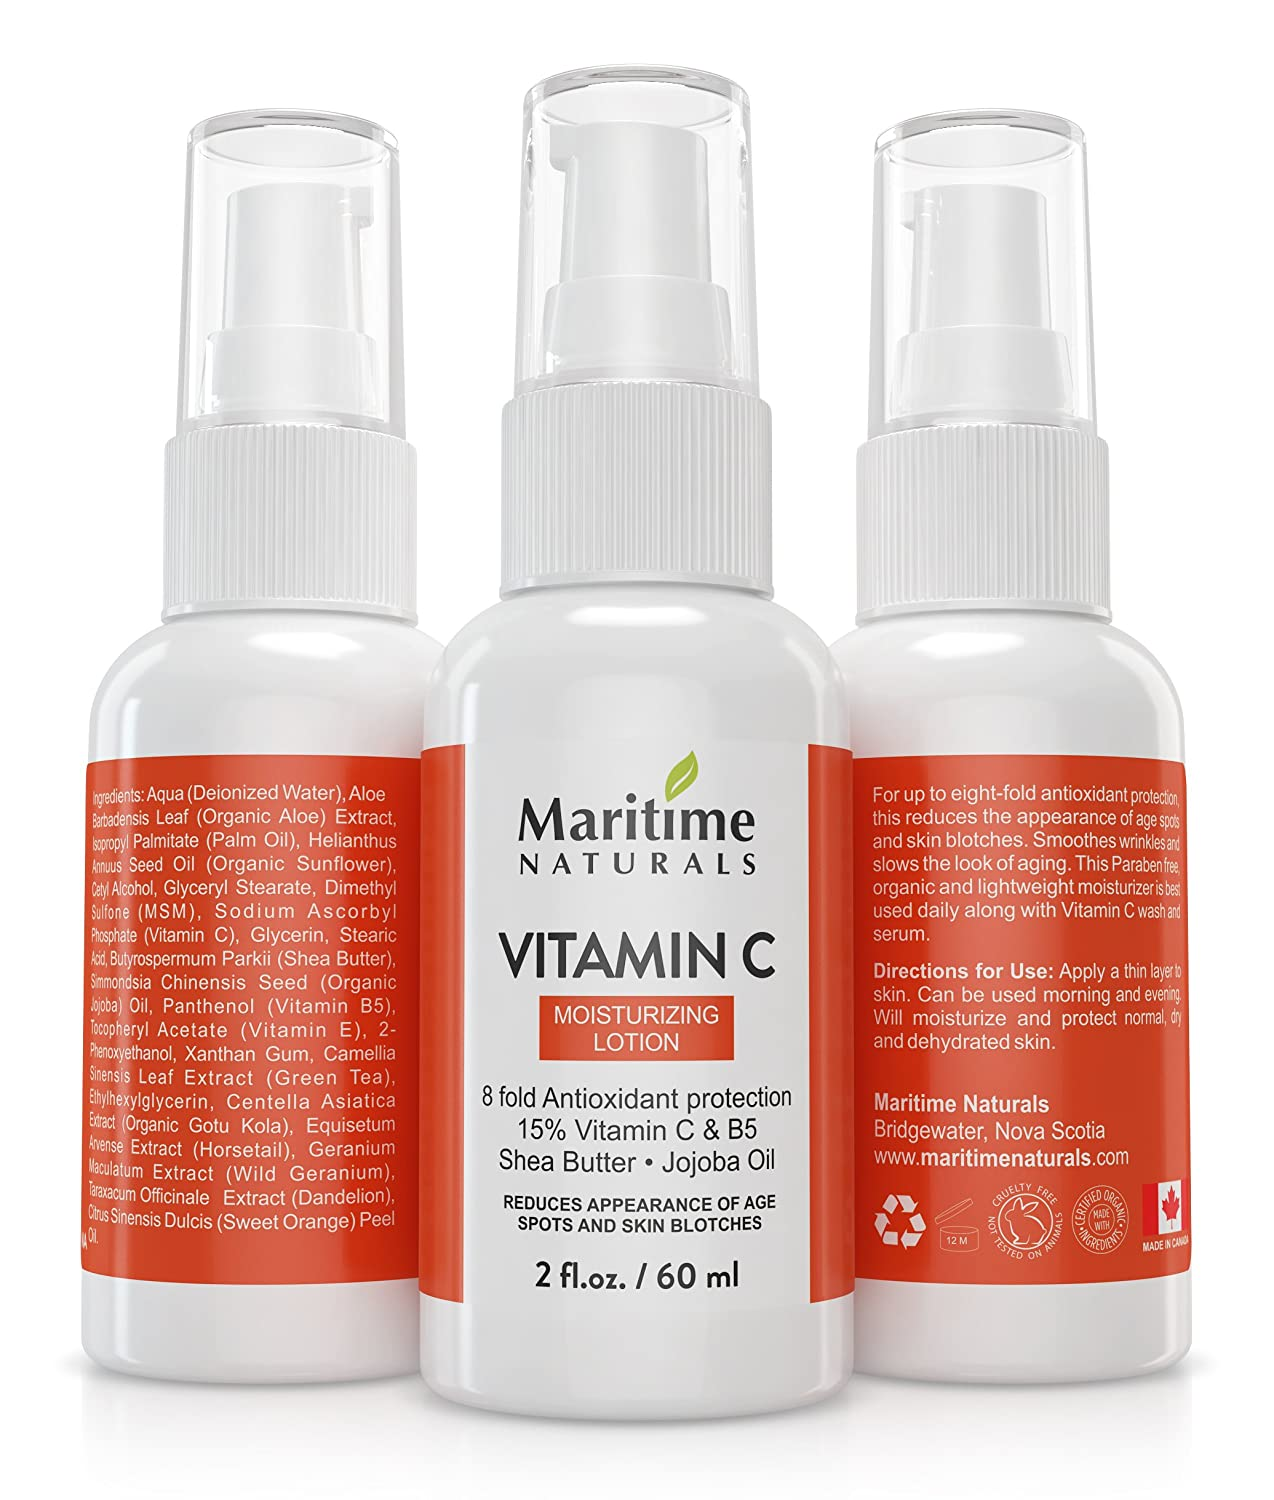 Moisturizing Lotion with 15% Vitamin C By Maritime Naturals: Skin Care Moisturizer With Organic Ingredients, Anti-Aging Formula, Fade Wrinkles And Spots, Smooth Texture,Vegan,Paraben FreeFor All Skin Types